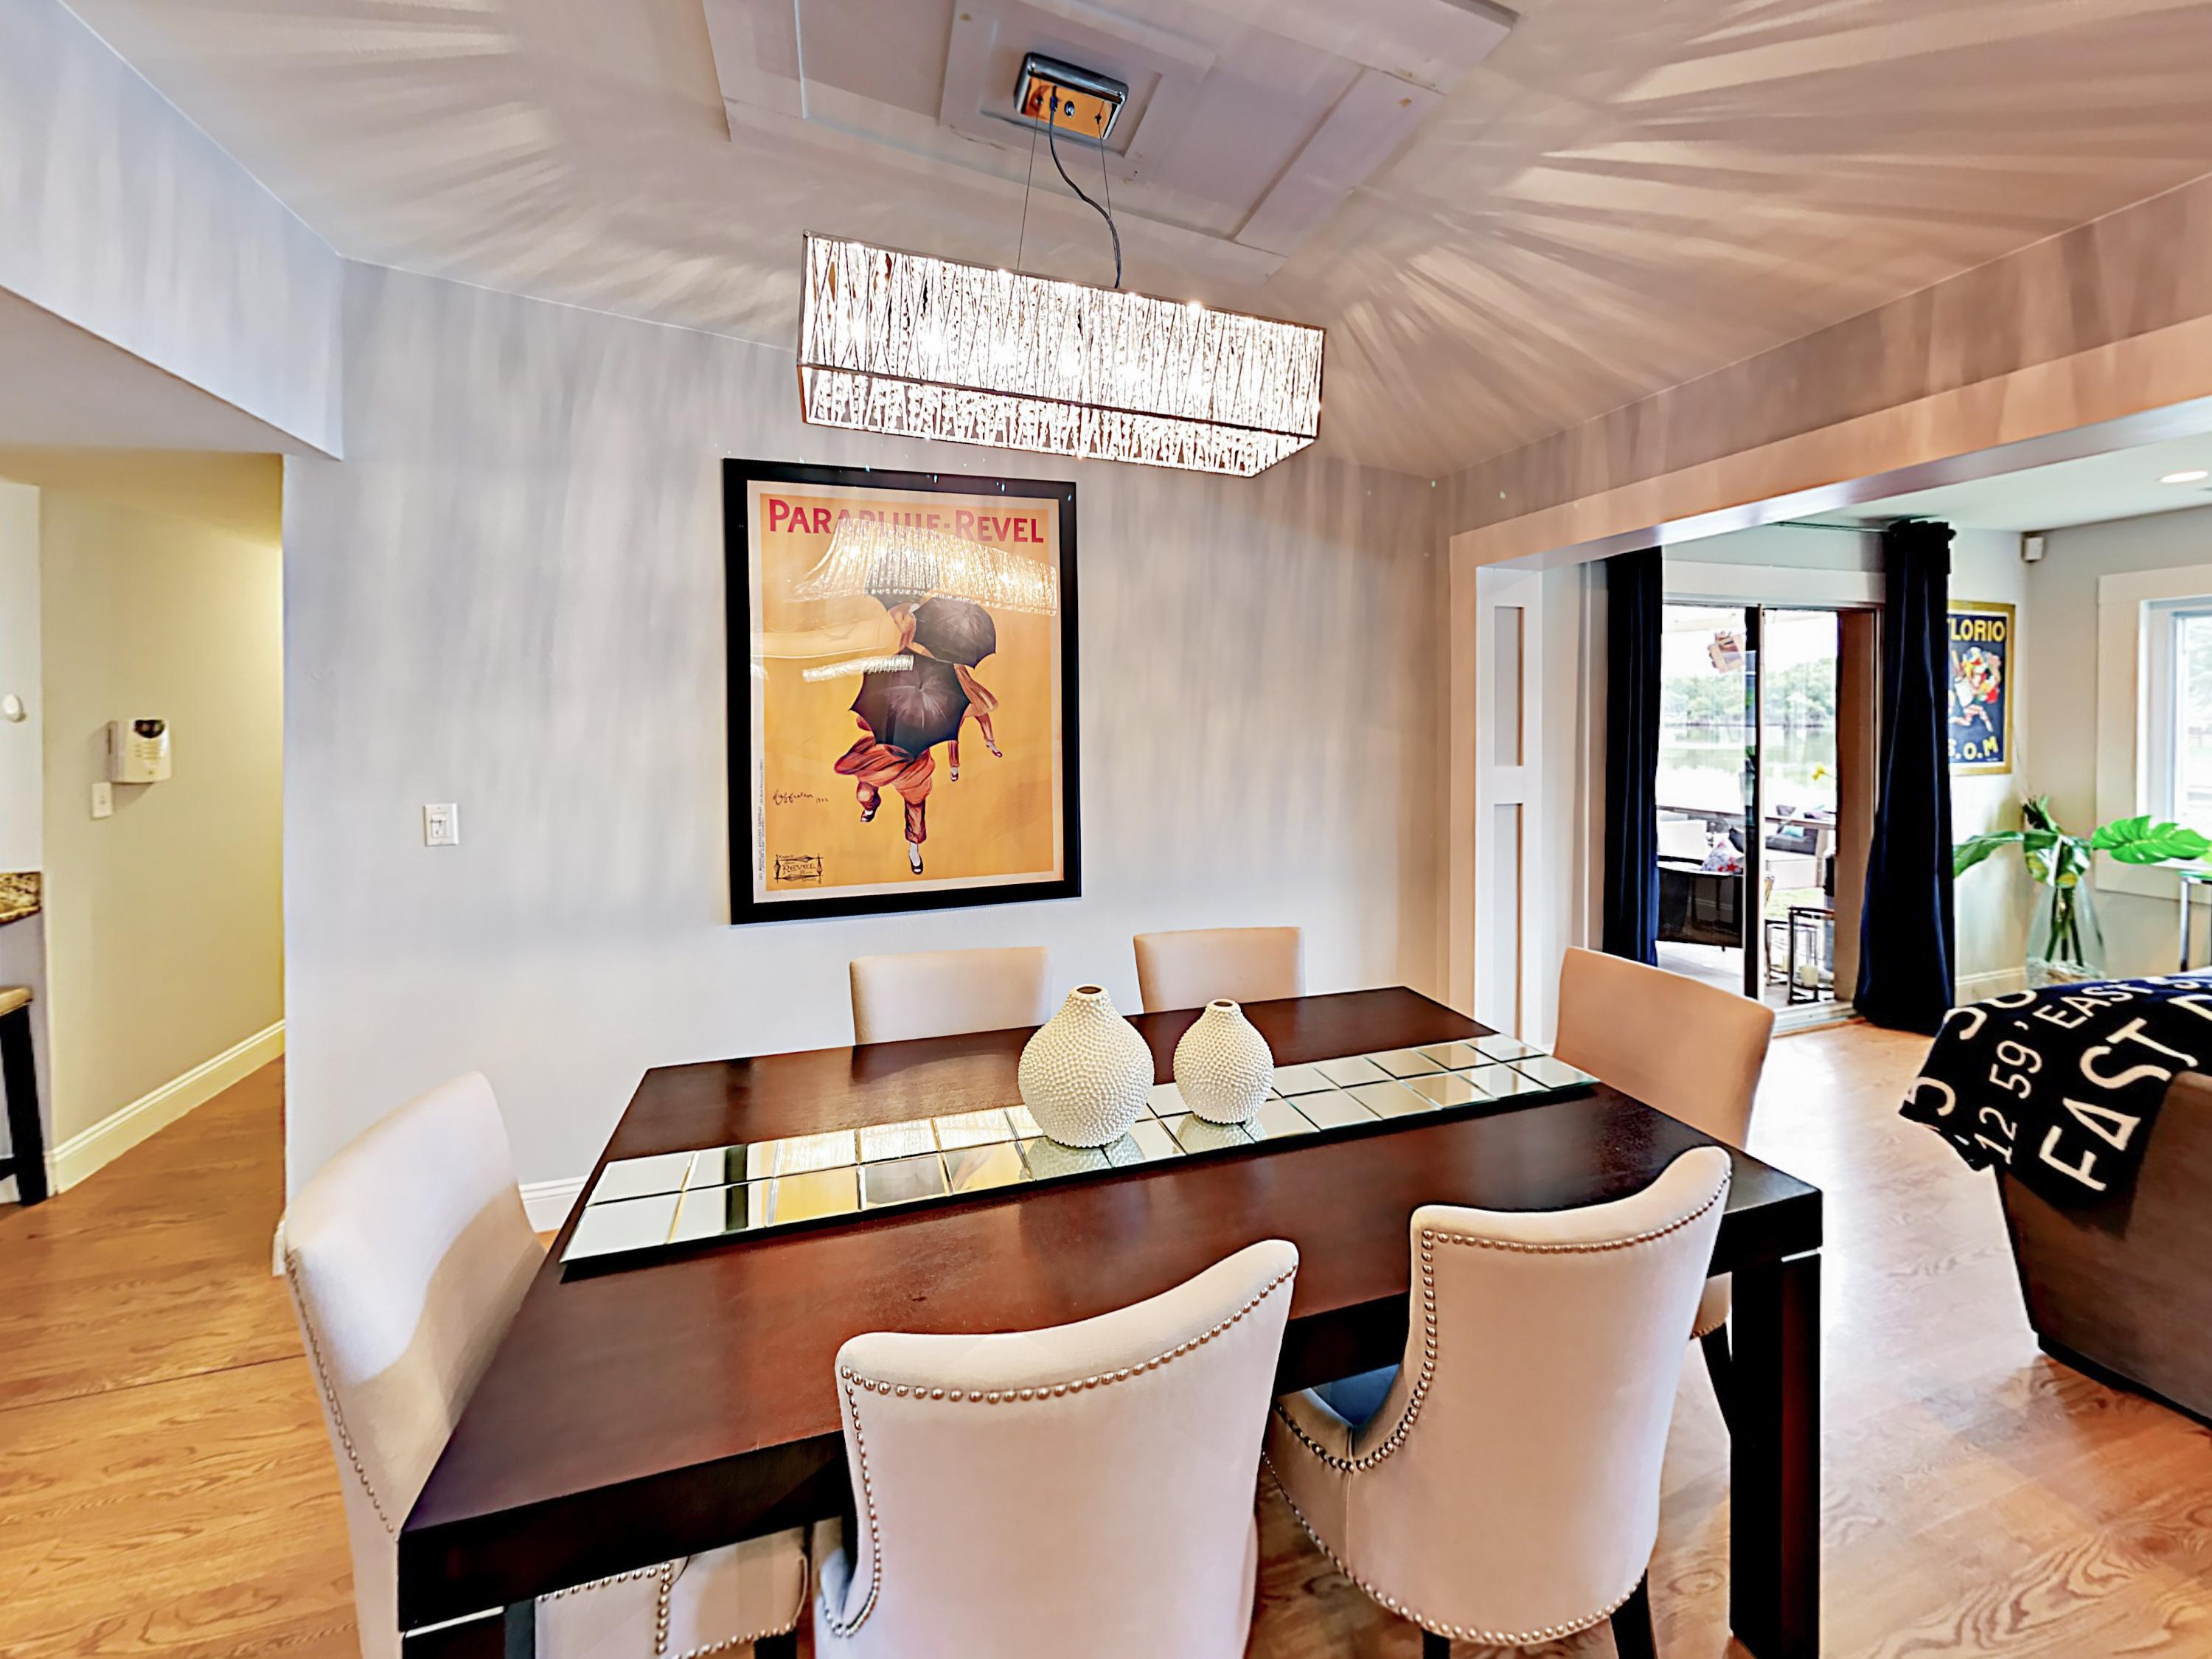 In the downstairs unit, a dining table can accommodate 6 people.